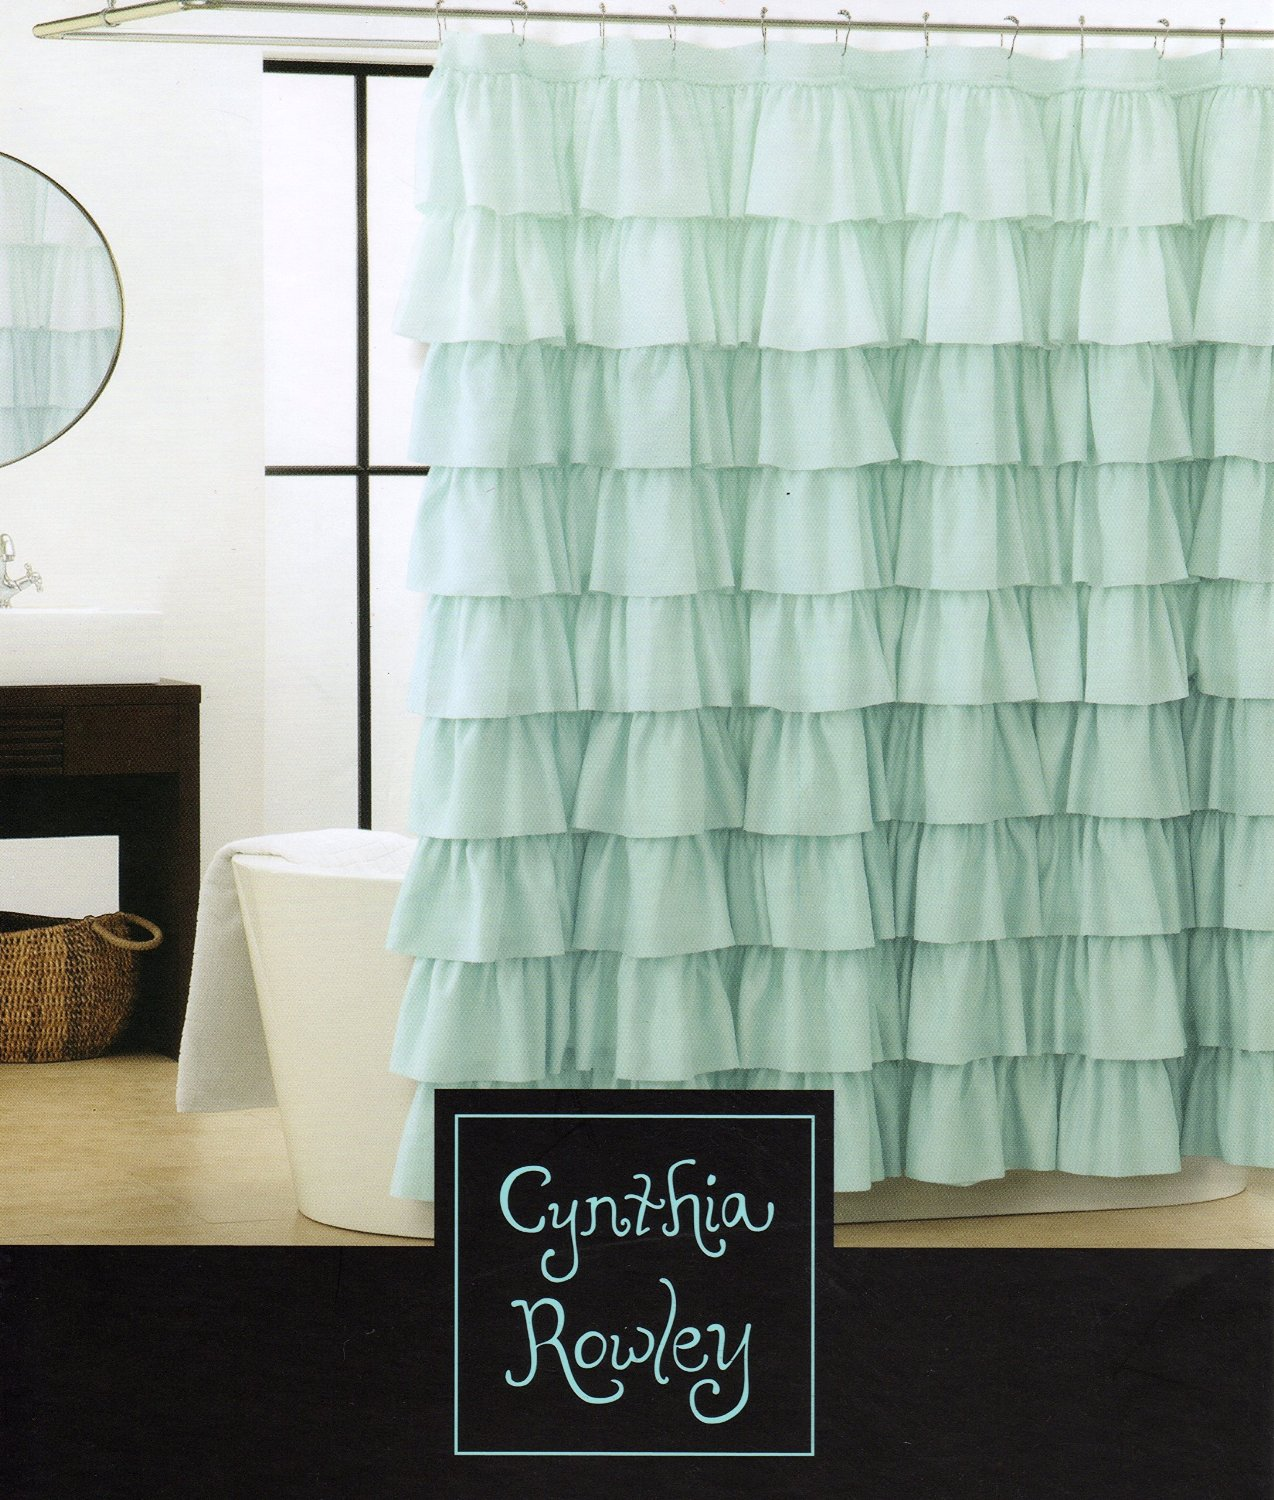 Cynthia Rowley Shower Curtain with Light Aqua Blue Turquoise and Shabby Chic Gypsy Ruffled Tiers Fabric Shower Curtain